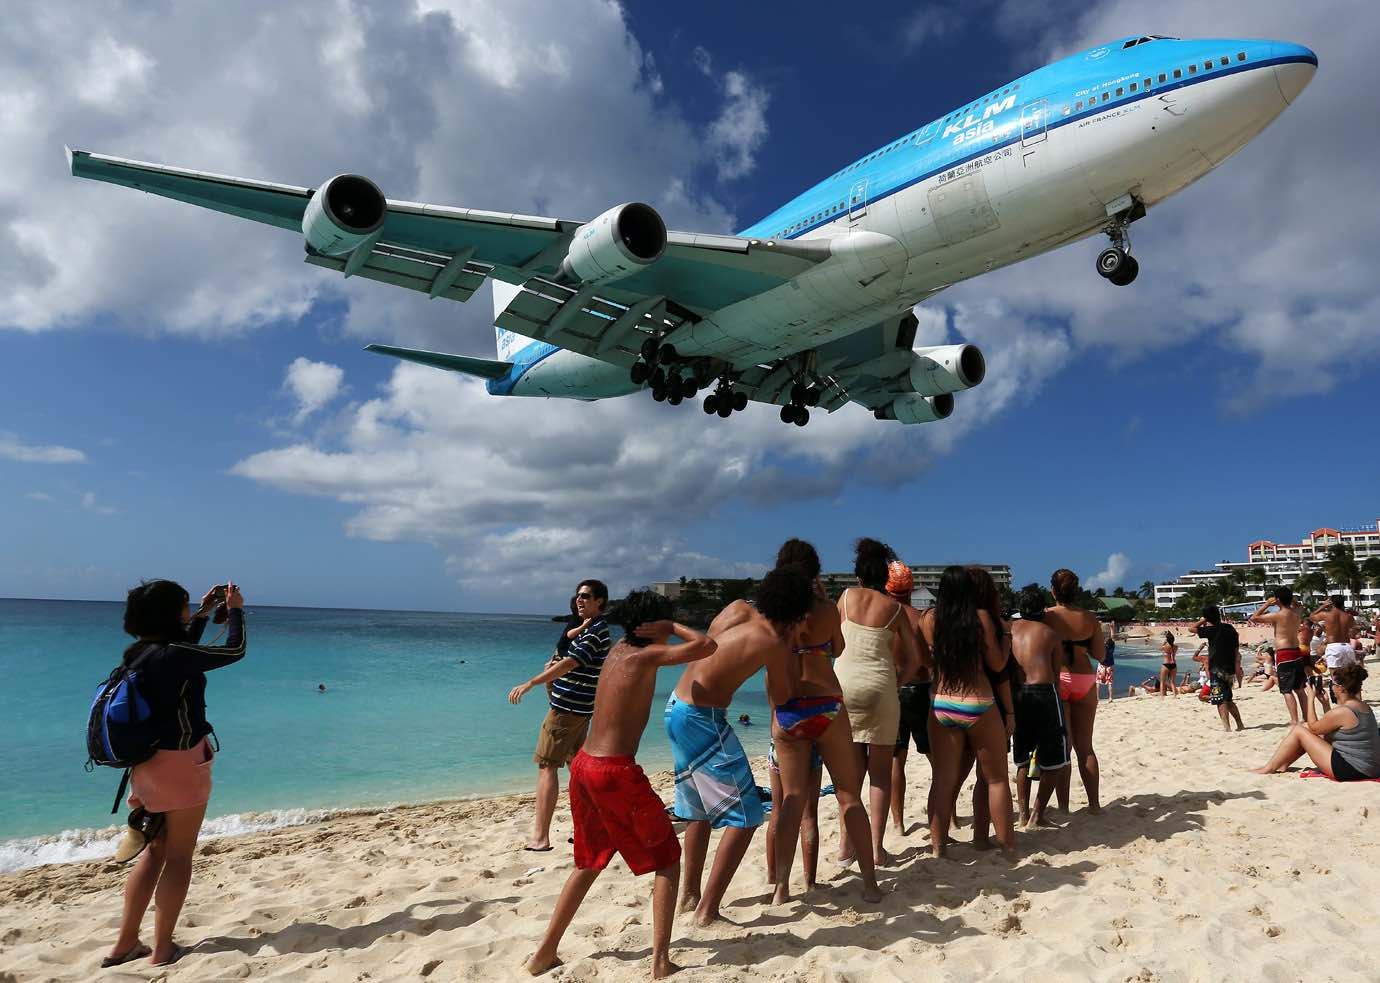 Things to do in St Marten St Maarten include watching KLM_Asia_Boeing_747-400_landing_at_SXM